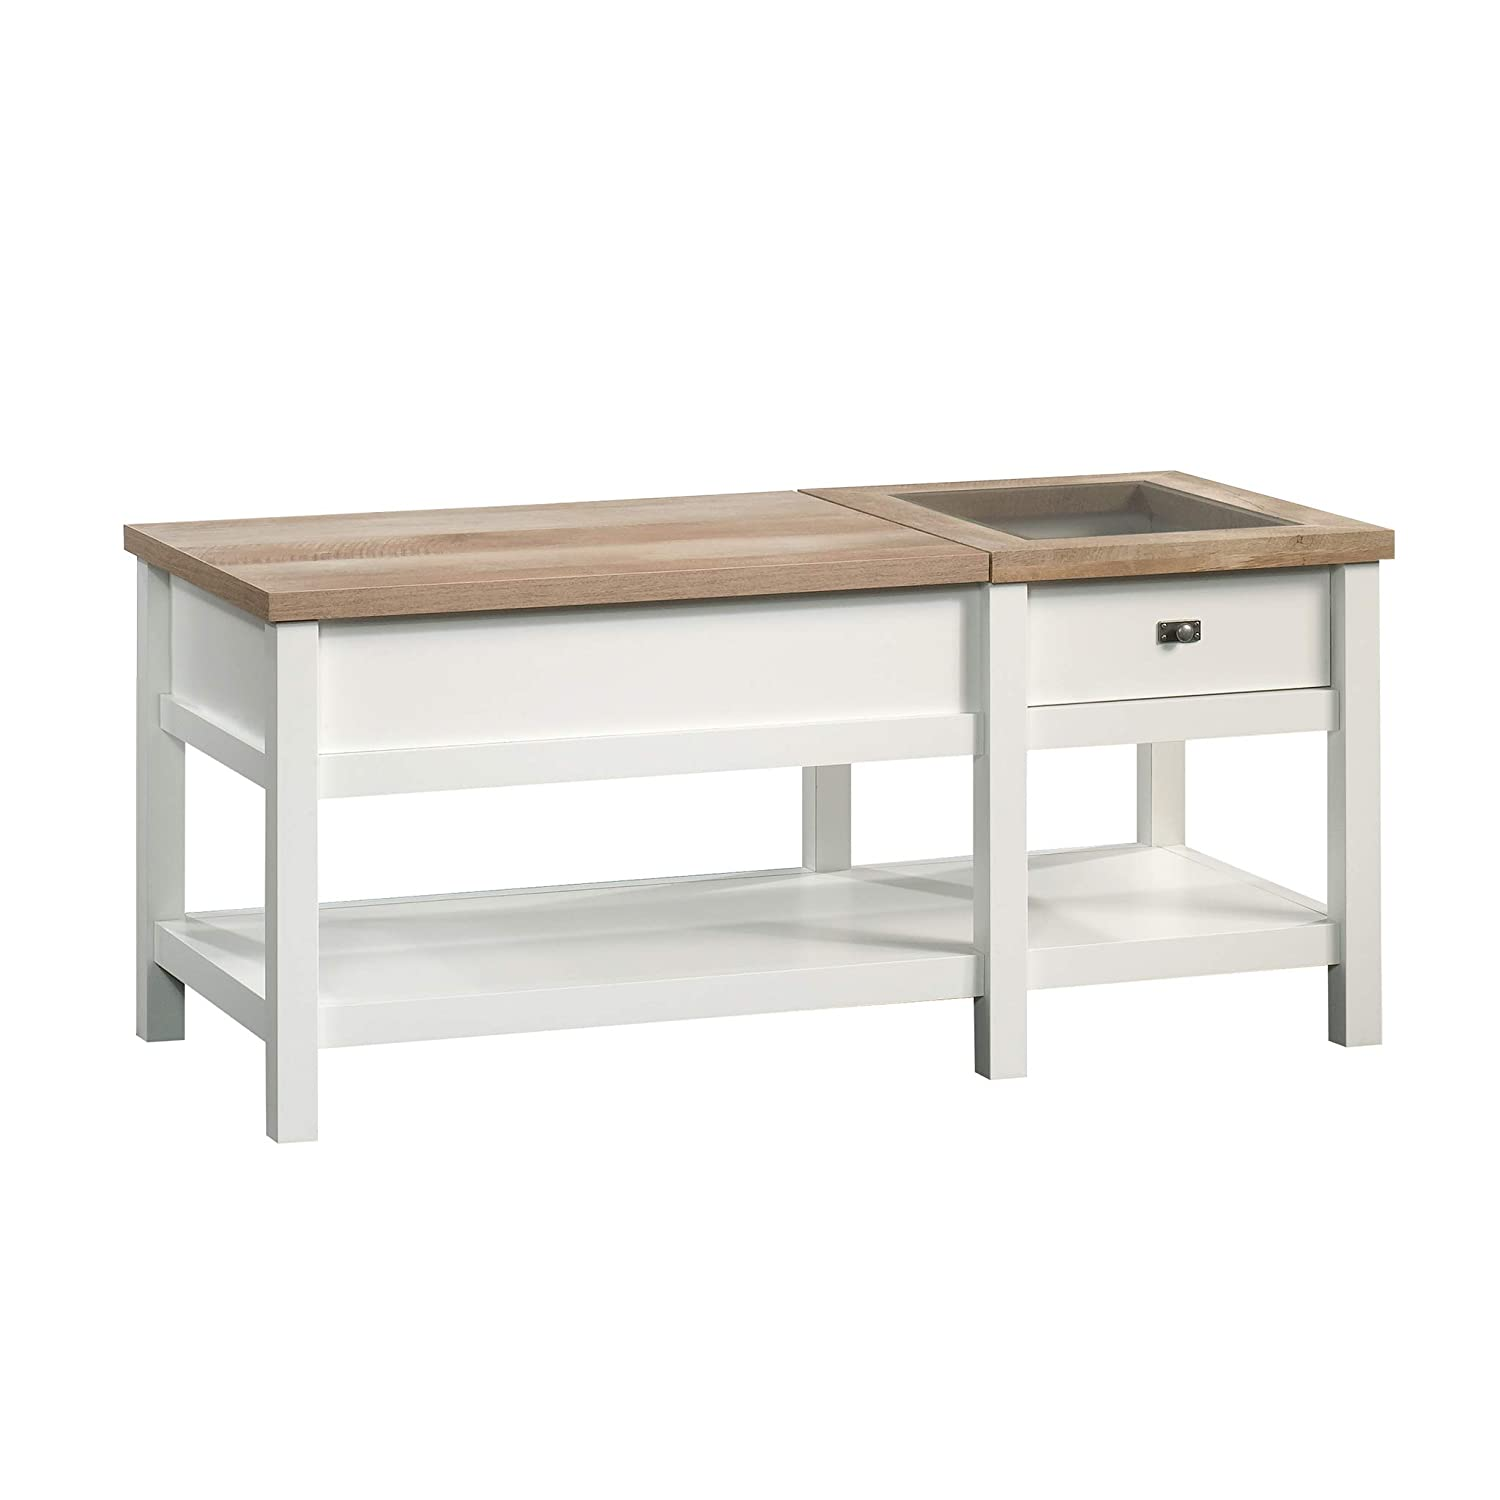 White Lift Up Coffee Table.Sauder 421463 Cottage Road Lift Top Coffee Table L 42 91 X W 19 02 X H 18 98 Soft White Finish